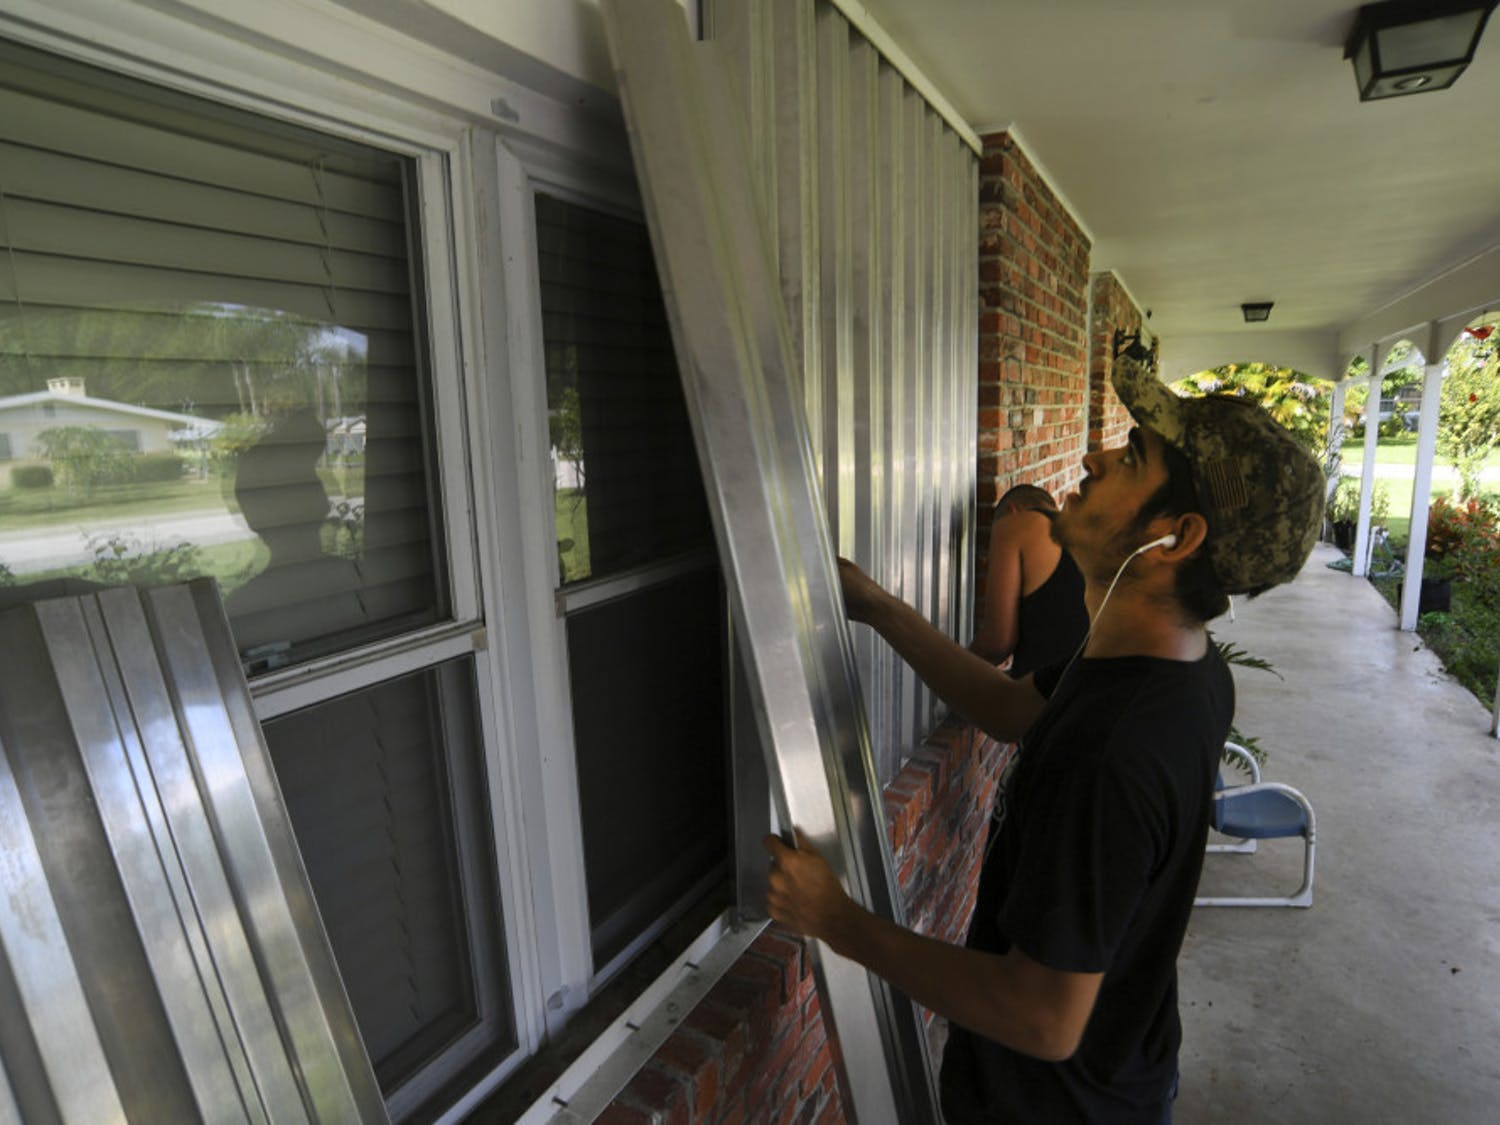 Richard Henson (foreground) and his uncle, Peter Henson, prepare their grandmother's house Thursday, Aug. 29, 2019, where she lives on Greenwood Drive in Fort Pierce, Fla., for the arrival of Hurricane Dorian. (Eric Hasert/TCPalm.com via AP)